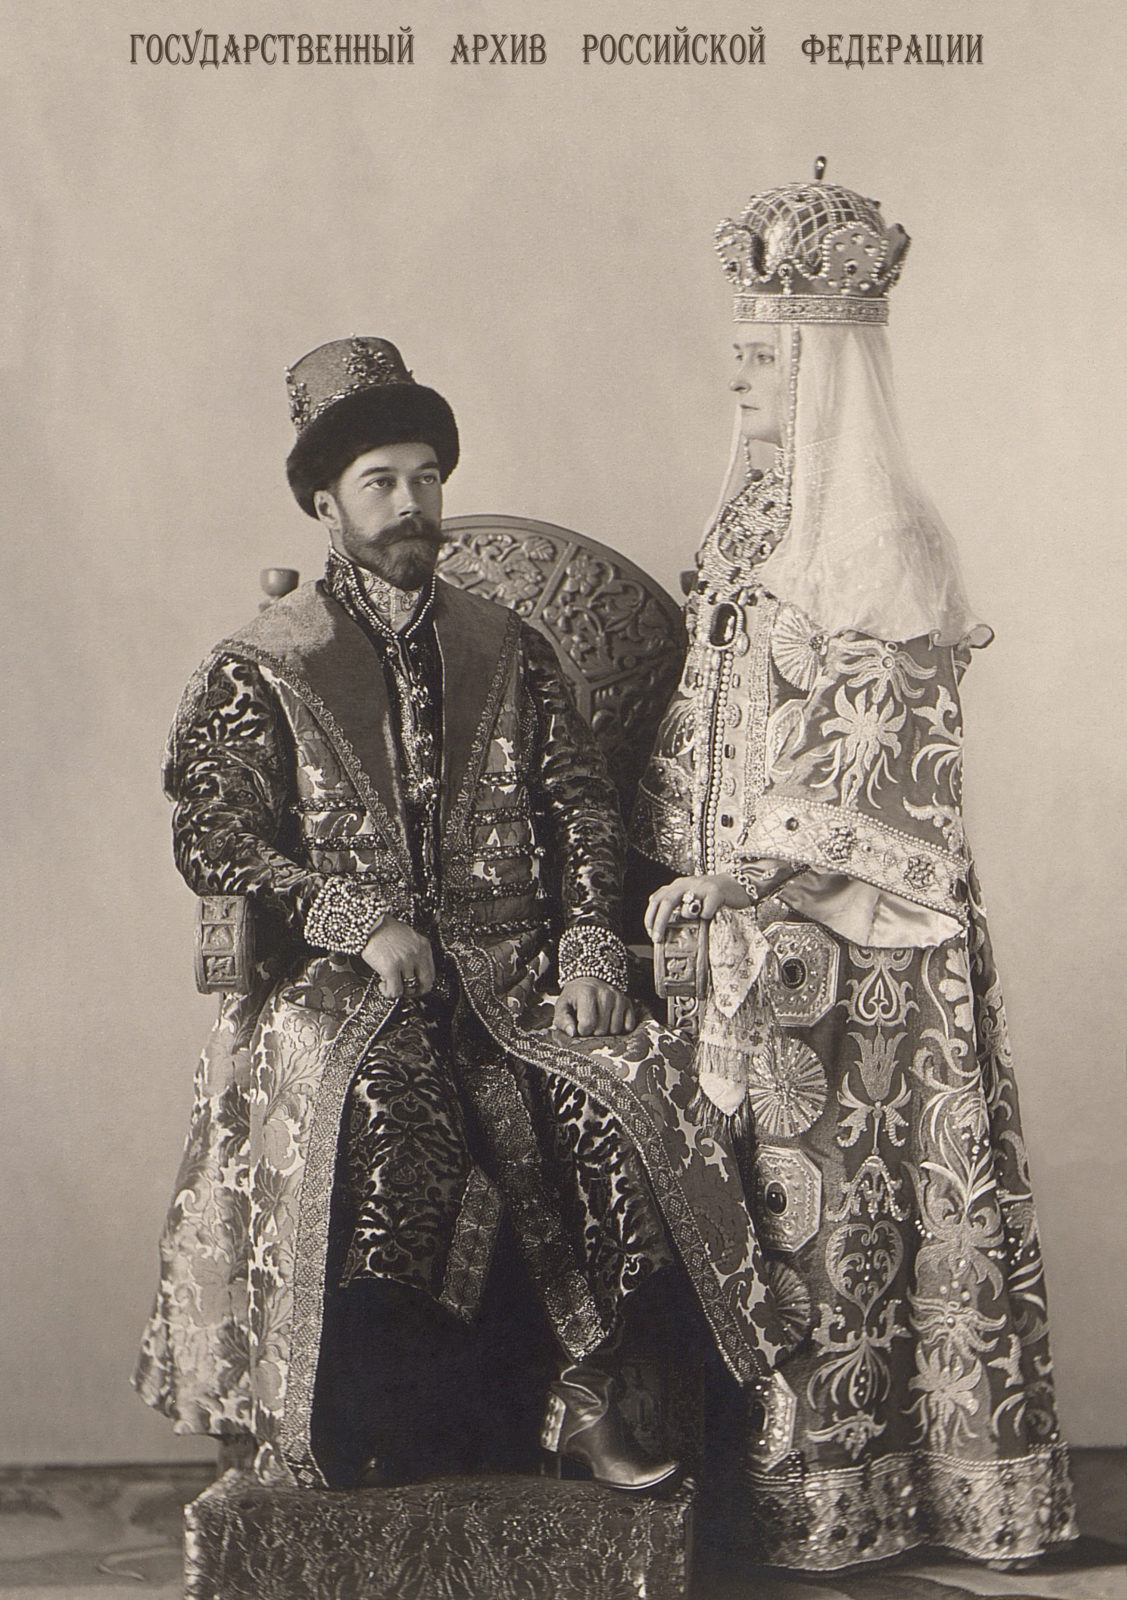 Emperor Nicholas II and Empress Alexandra Feodorovna in Russiantraditional costumes